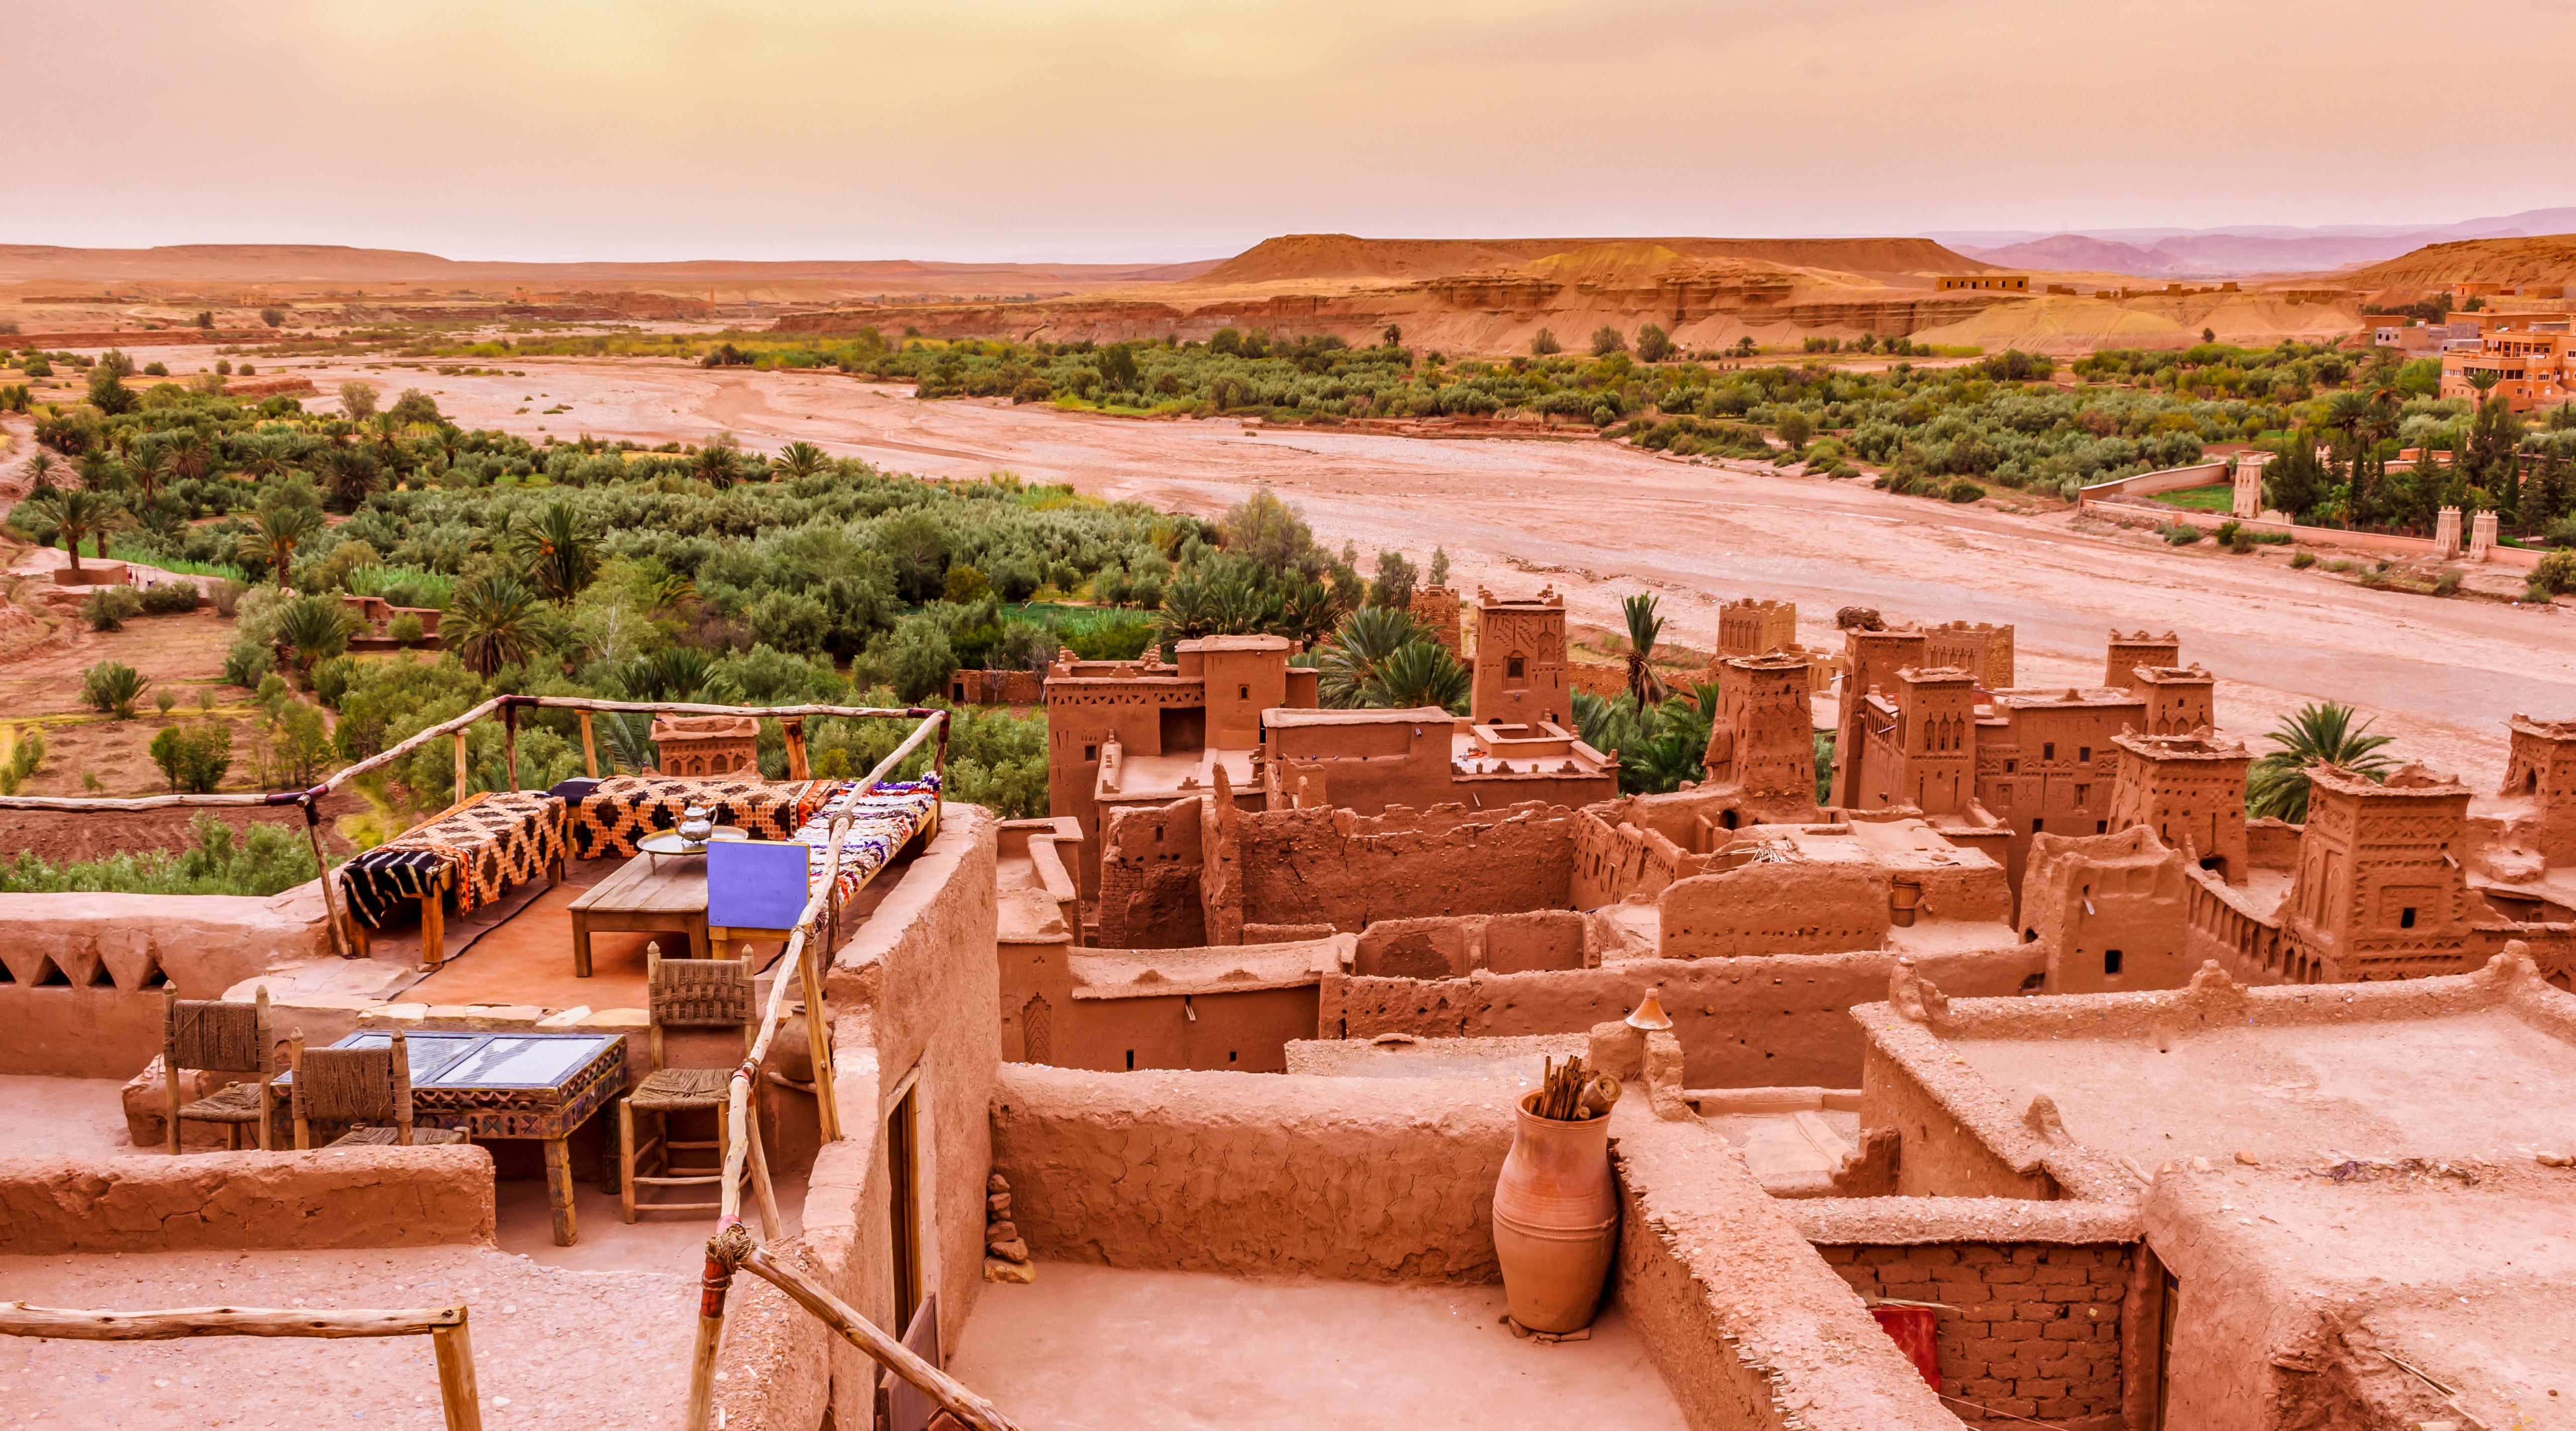 Overlooking Morrocan rooftop patios formed with red clay. Beyond them is more red dirt, some evergreen trees and a red butte.